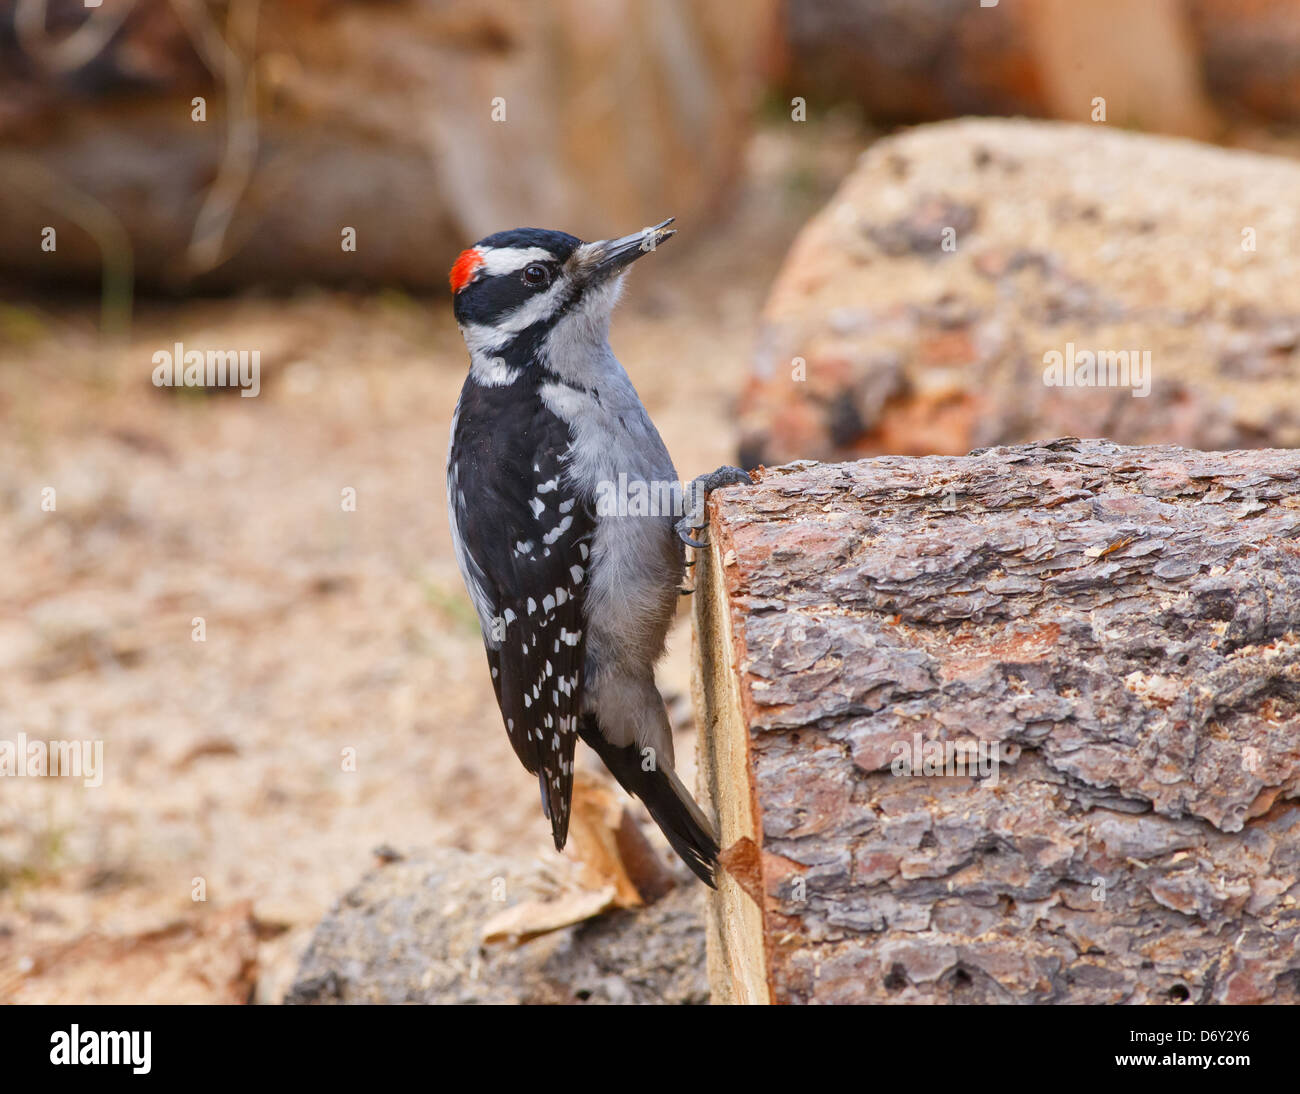 Hairy Woodpecker gripping on a freshly cut round of firewood with watchful eye - Stock Image